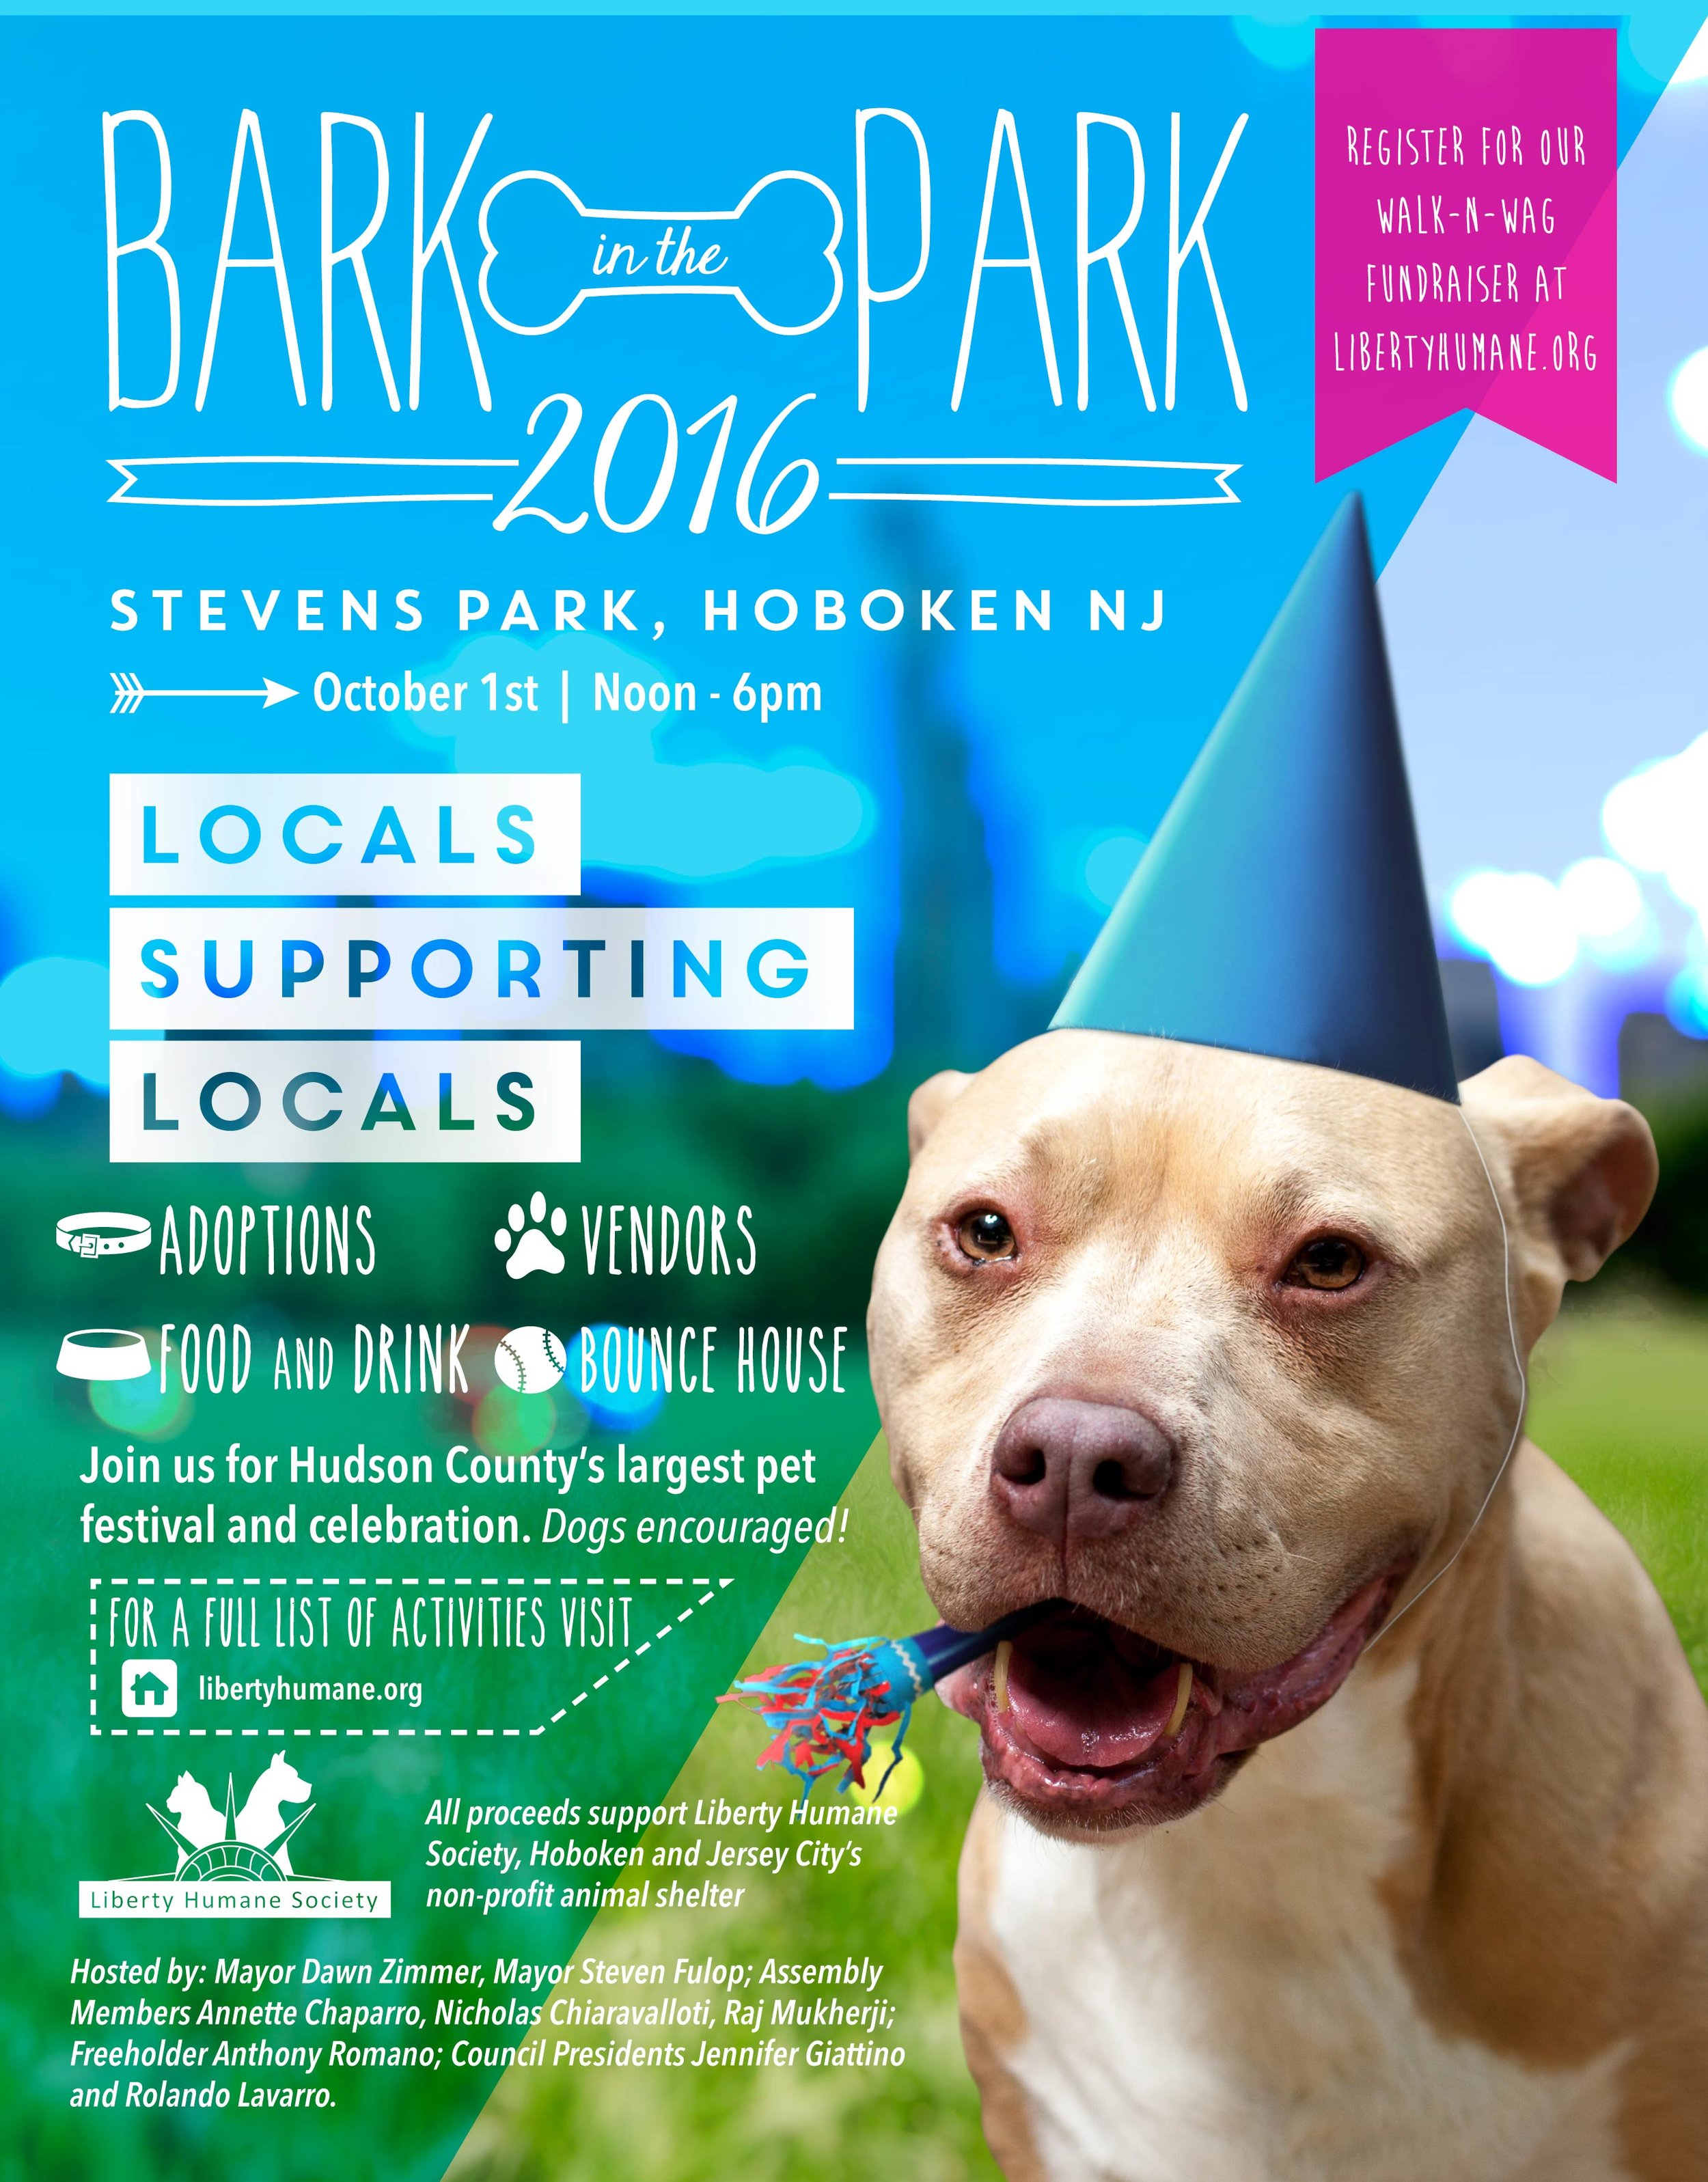 Visit http://www.libertyhumane.org/ for more information about the event and ways that you can donate to this fantastic organization!